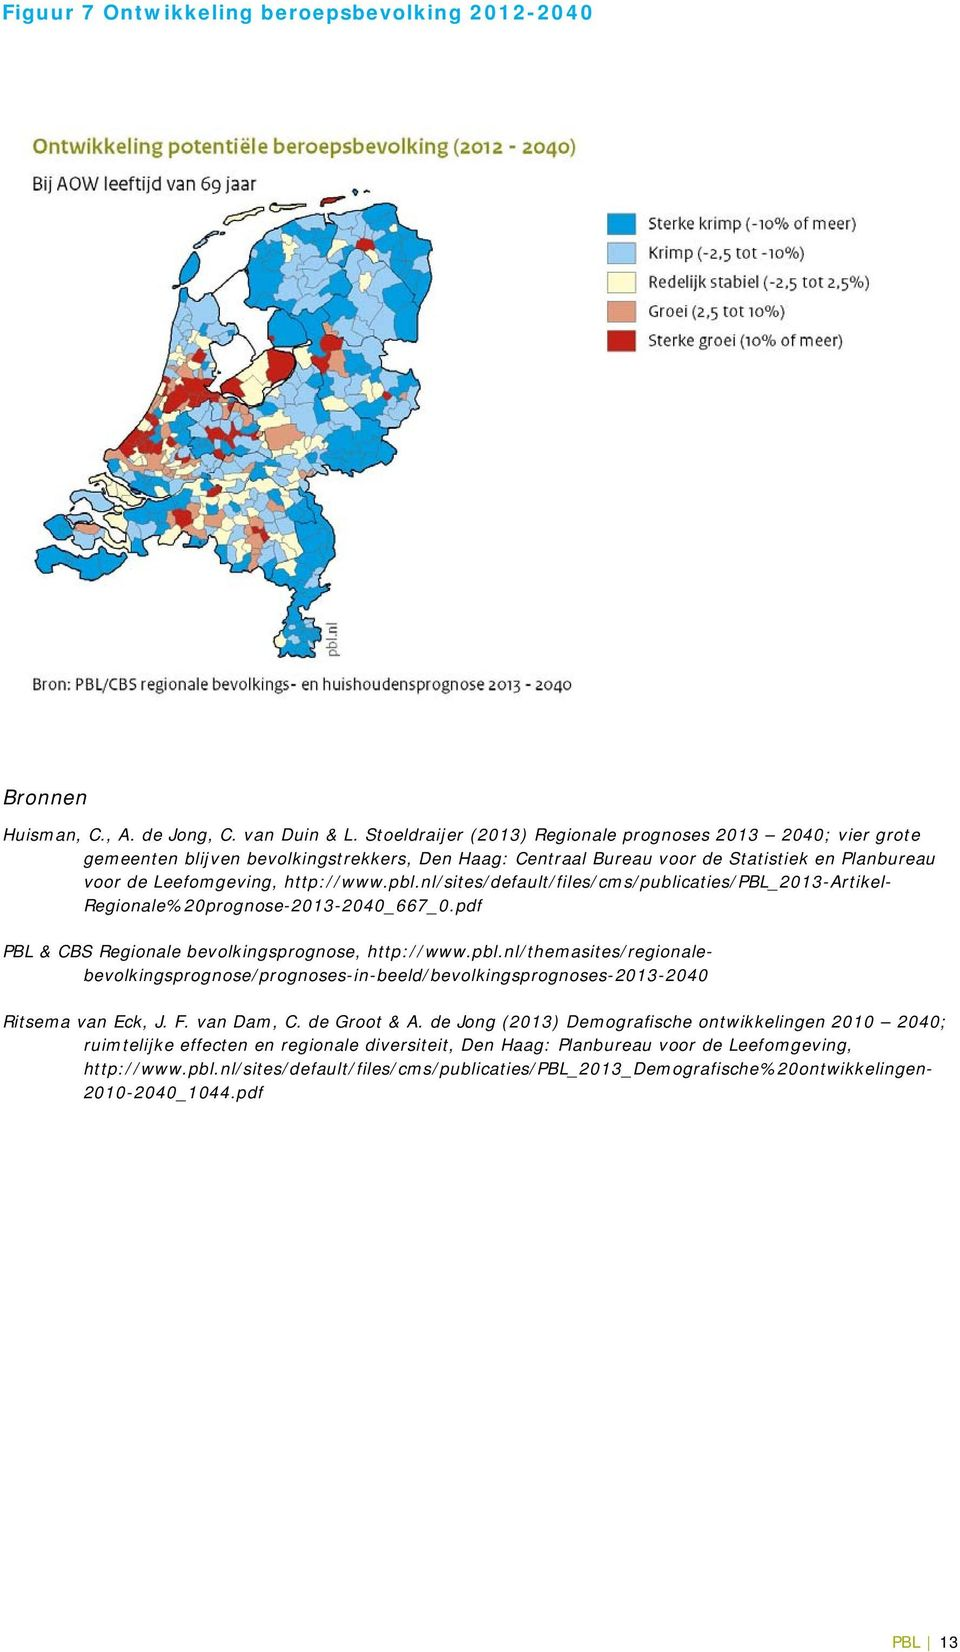 nl/sites/default/files/cms/publicaties/pbl_2013-artikel- Regionale%20prognose-2013-2040_667_0.pdf PBL & CBS Regionale bevolkingsprognose, http://www.pbl.nl/themasites/regionalebevolkingsprognose/prognoses-in-beeld/bevolkingsprognoses-2013-2040 Ritsema van Eck, J.